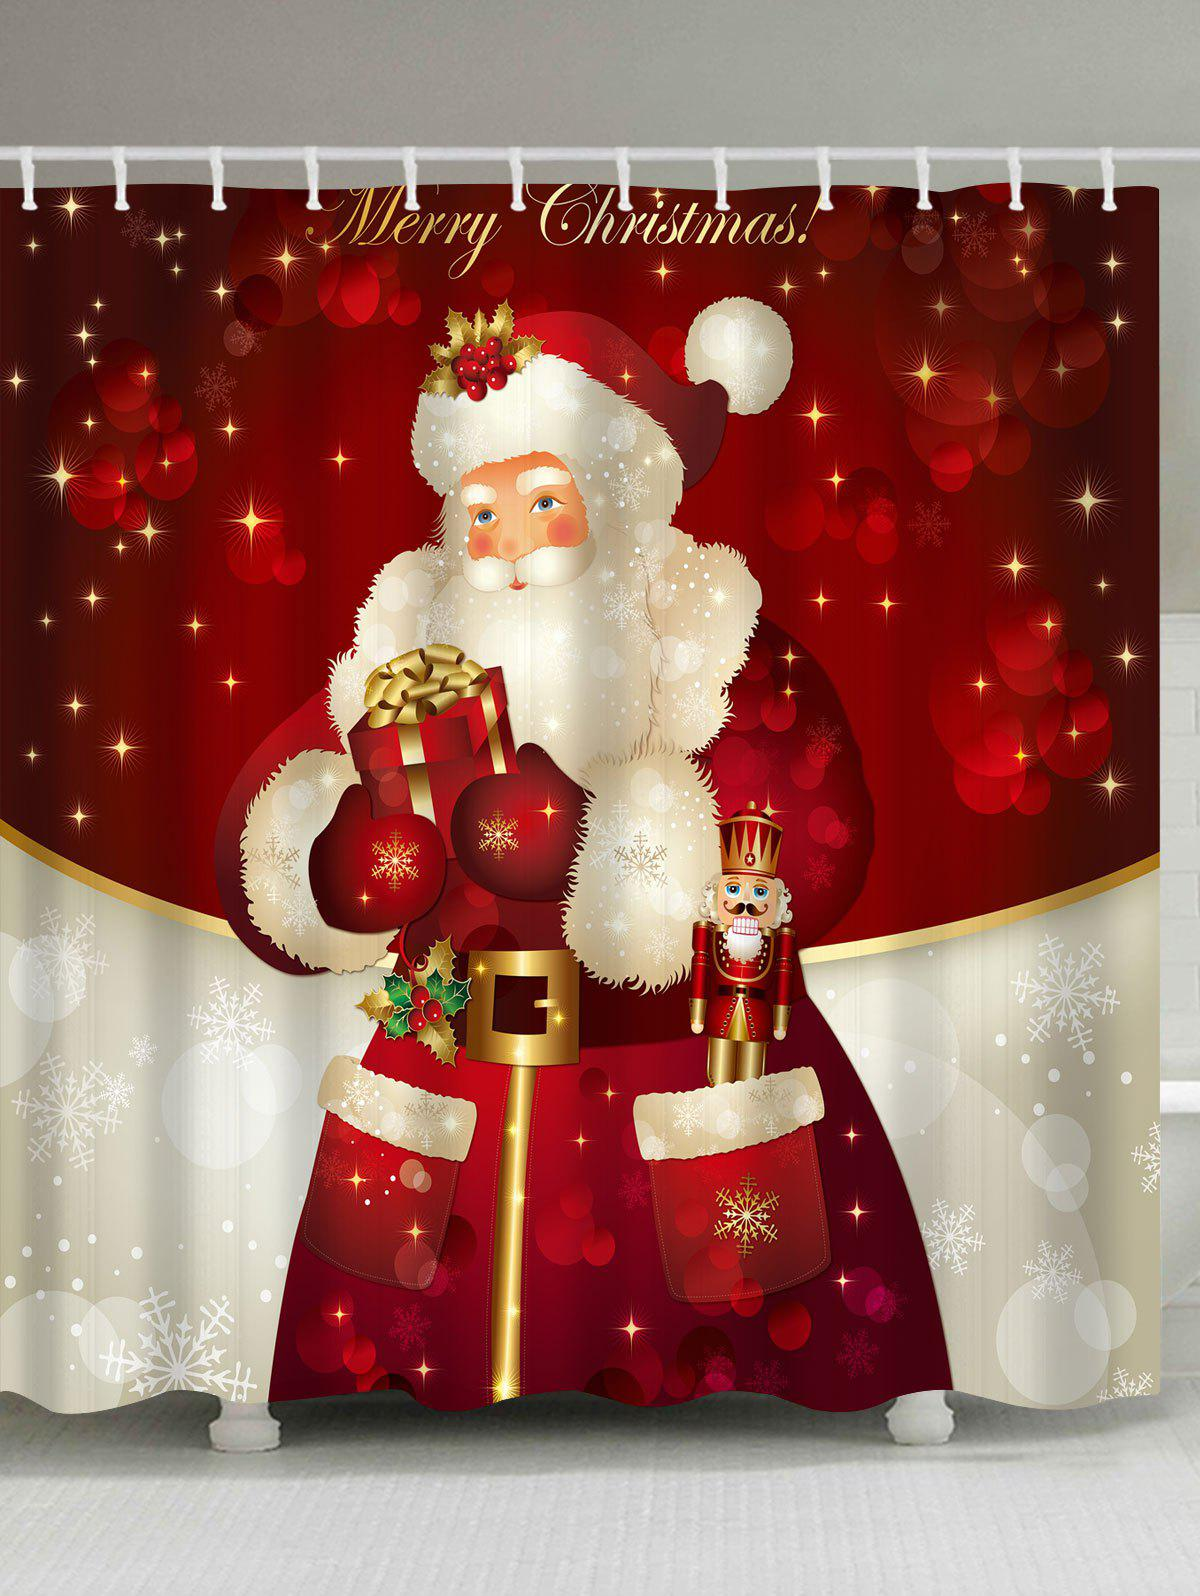 Christmas Santa Claus Waterproof Shower Curtain Barhroom DecorHOME<br><br>Size: W71 INCH * L79 INCH; Color: RED; Products Type: Shower Curtains; Materials: Polyester; Pattern: Santa Claus; Style: Festival; Number of Hook Holes: W59 inch*L71 inch: 10; W71 inch*L71 inch: 12; W71 inch*L79 inch: 12; Package Contents: 1 x Shower Curtain 1 x Hooks (Set);